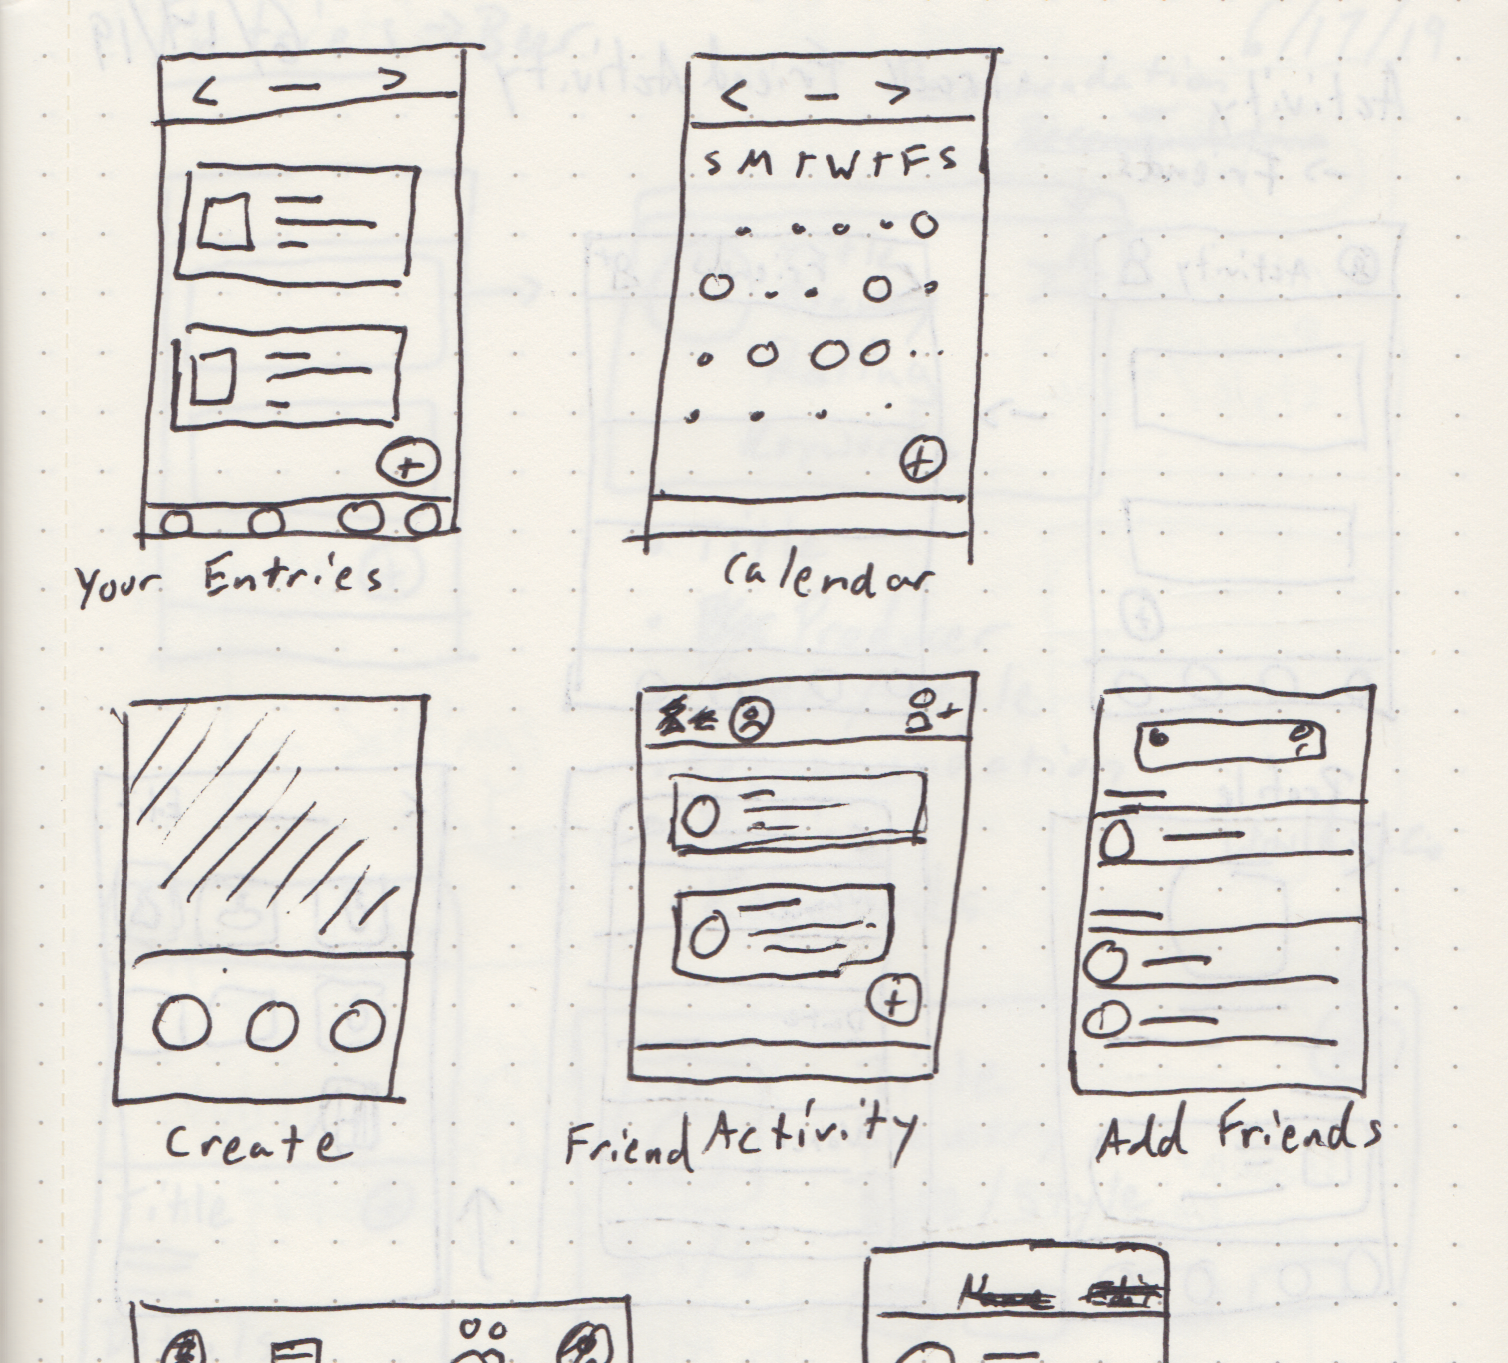 A quick look into my notebook. I tend to make thumbnails of screens before creating wireframes on the computer. It helps to get my ideas down on paper.